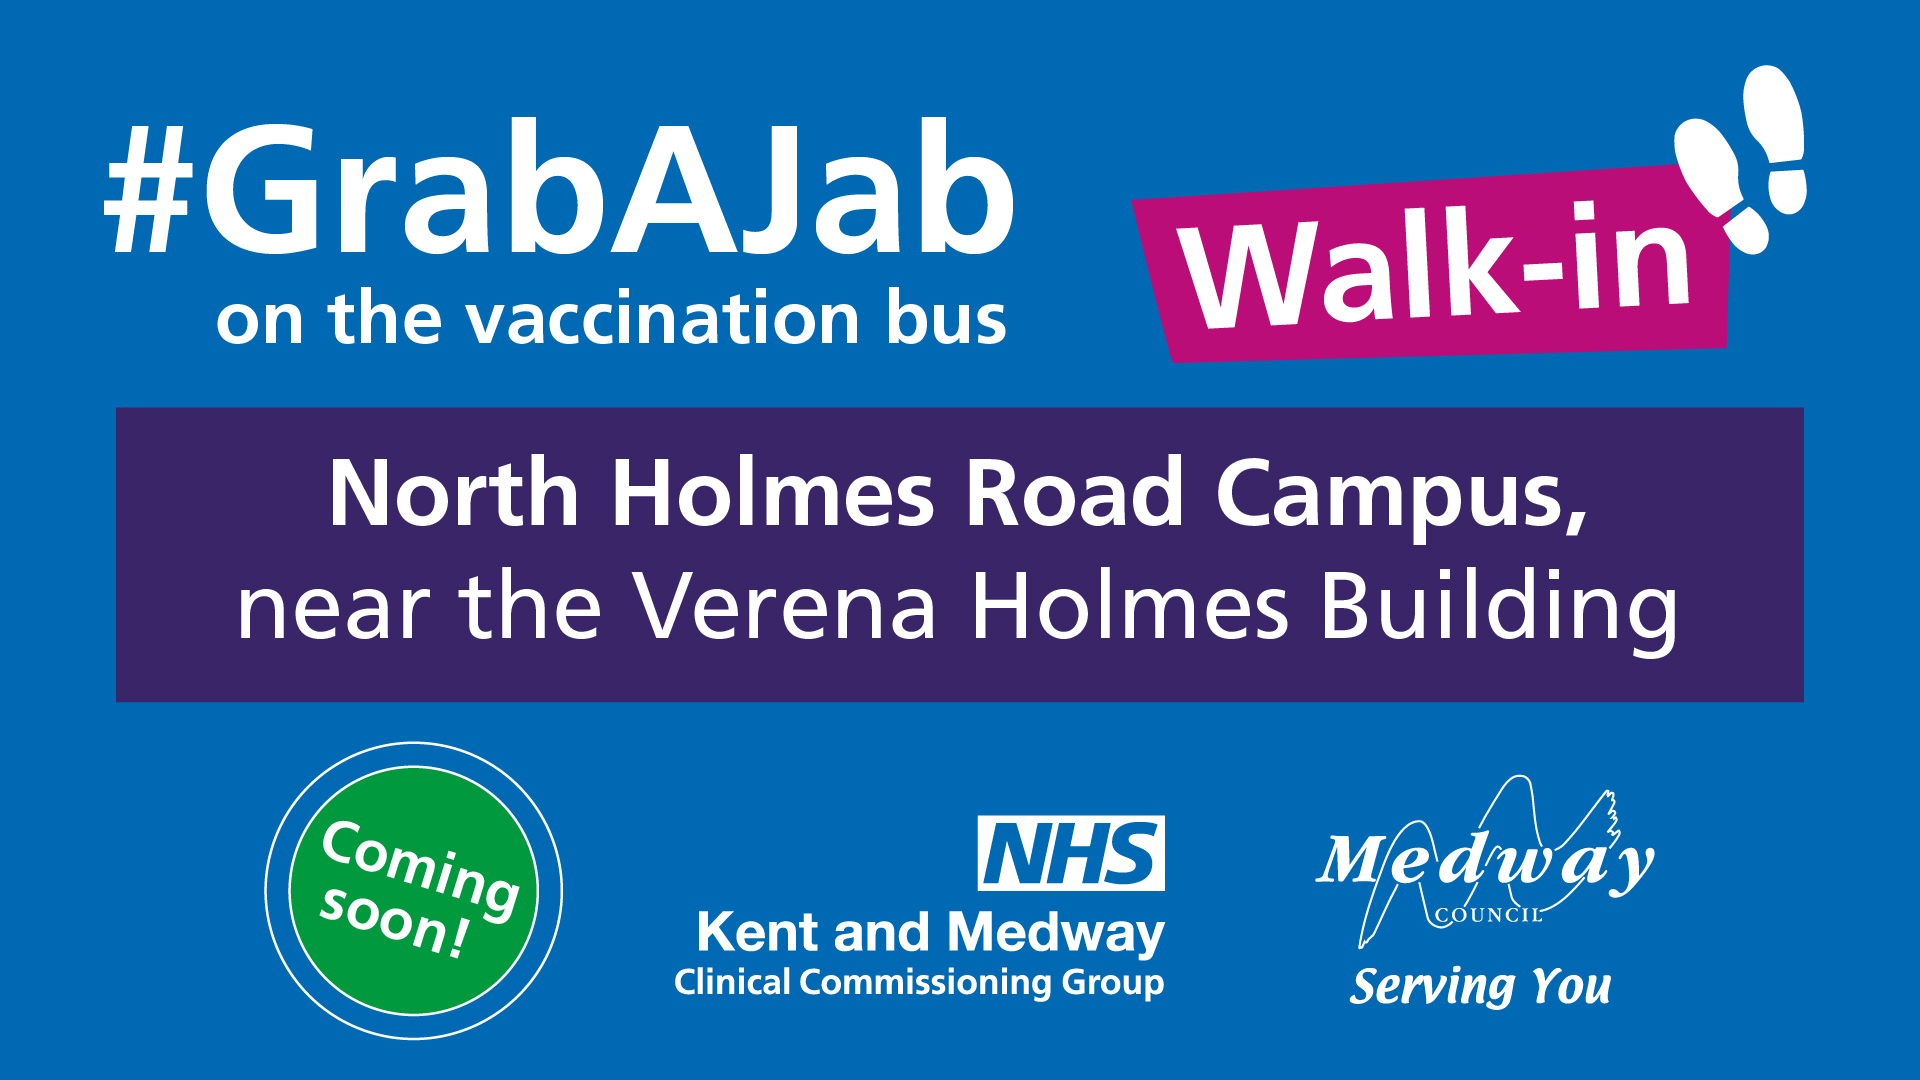 The vaccination bus is coming to Medway and Canterbury Campuses